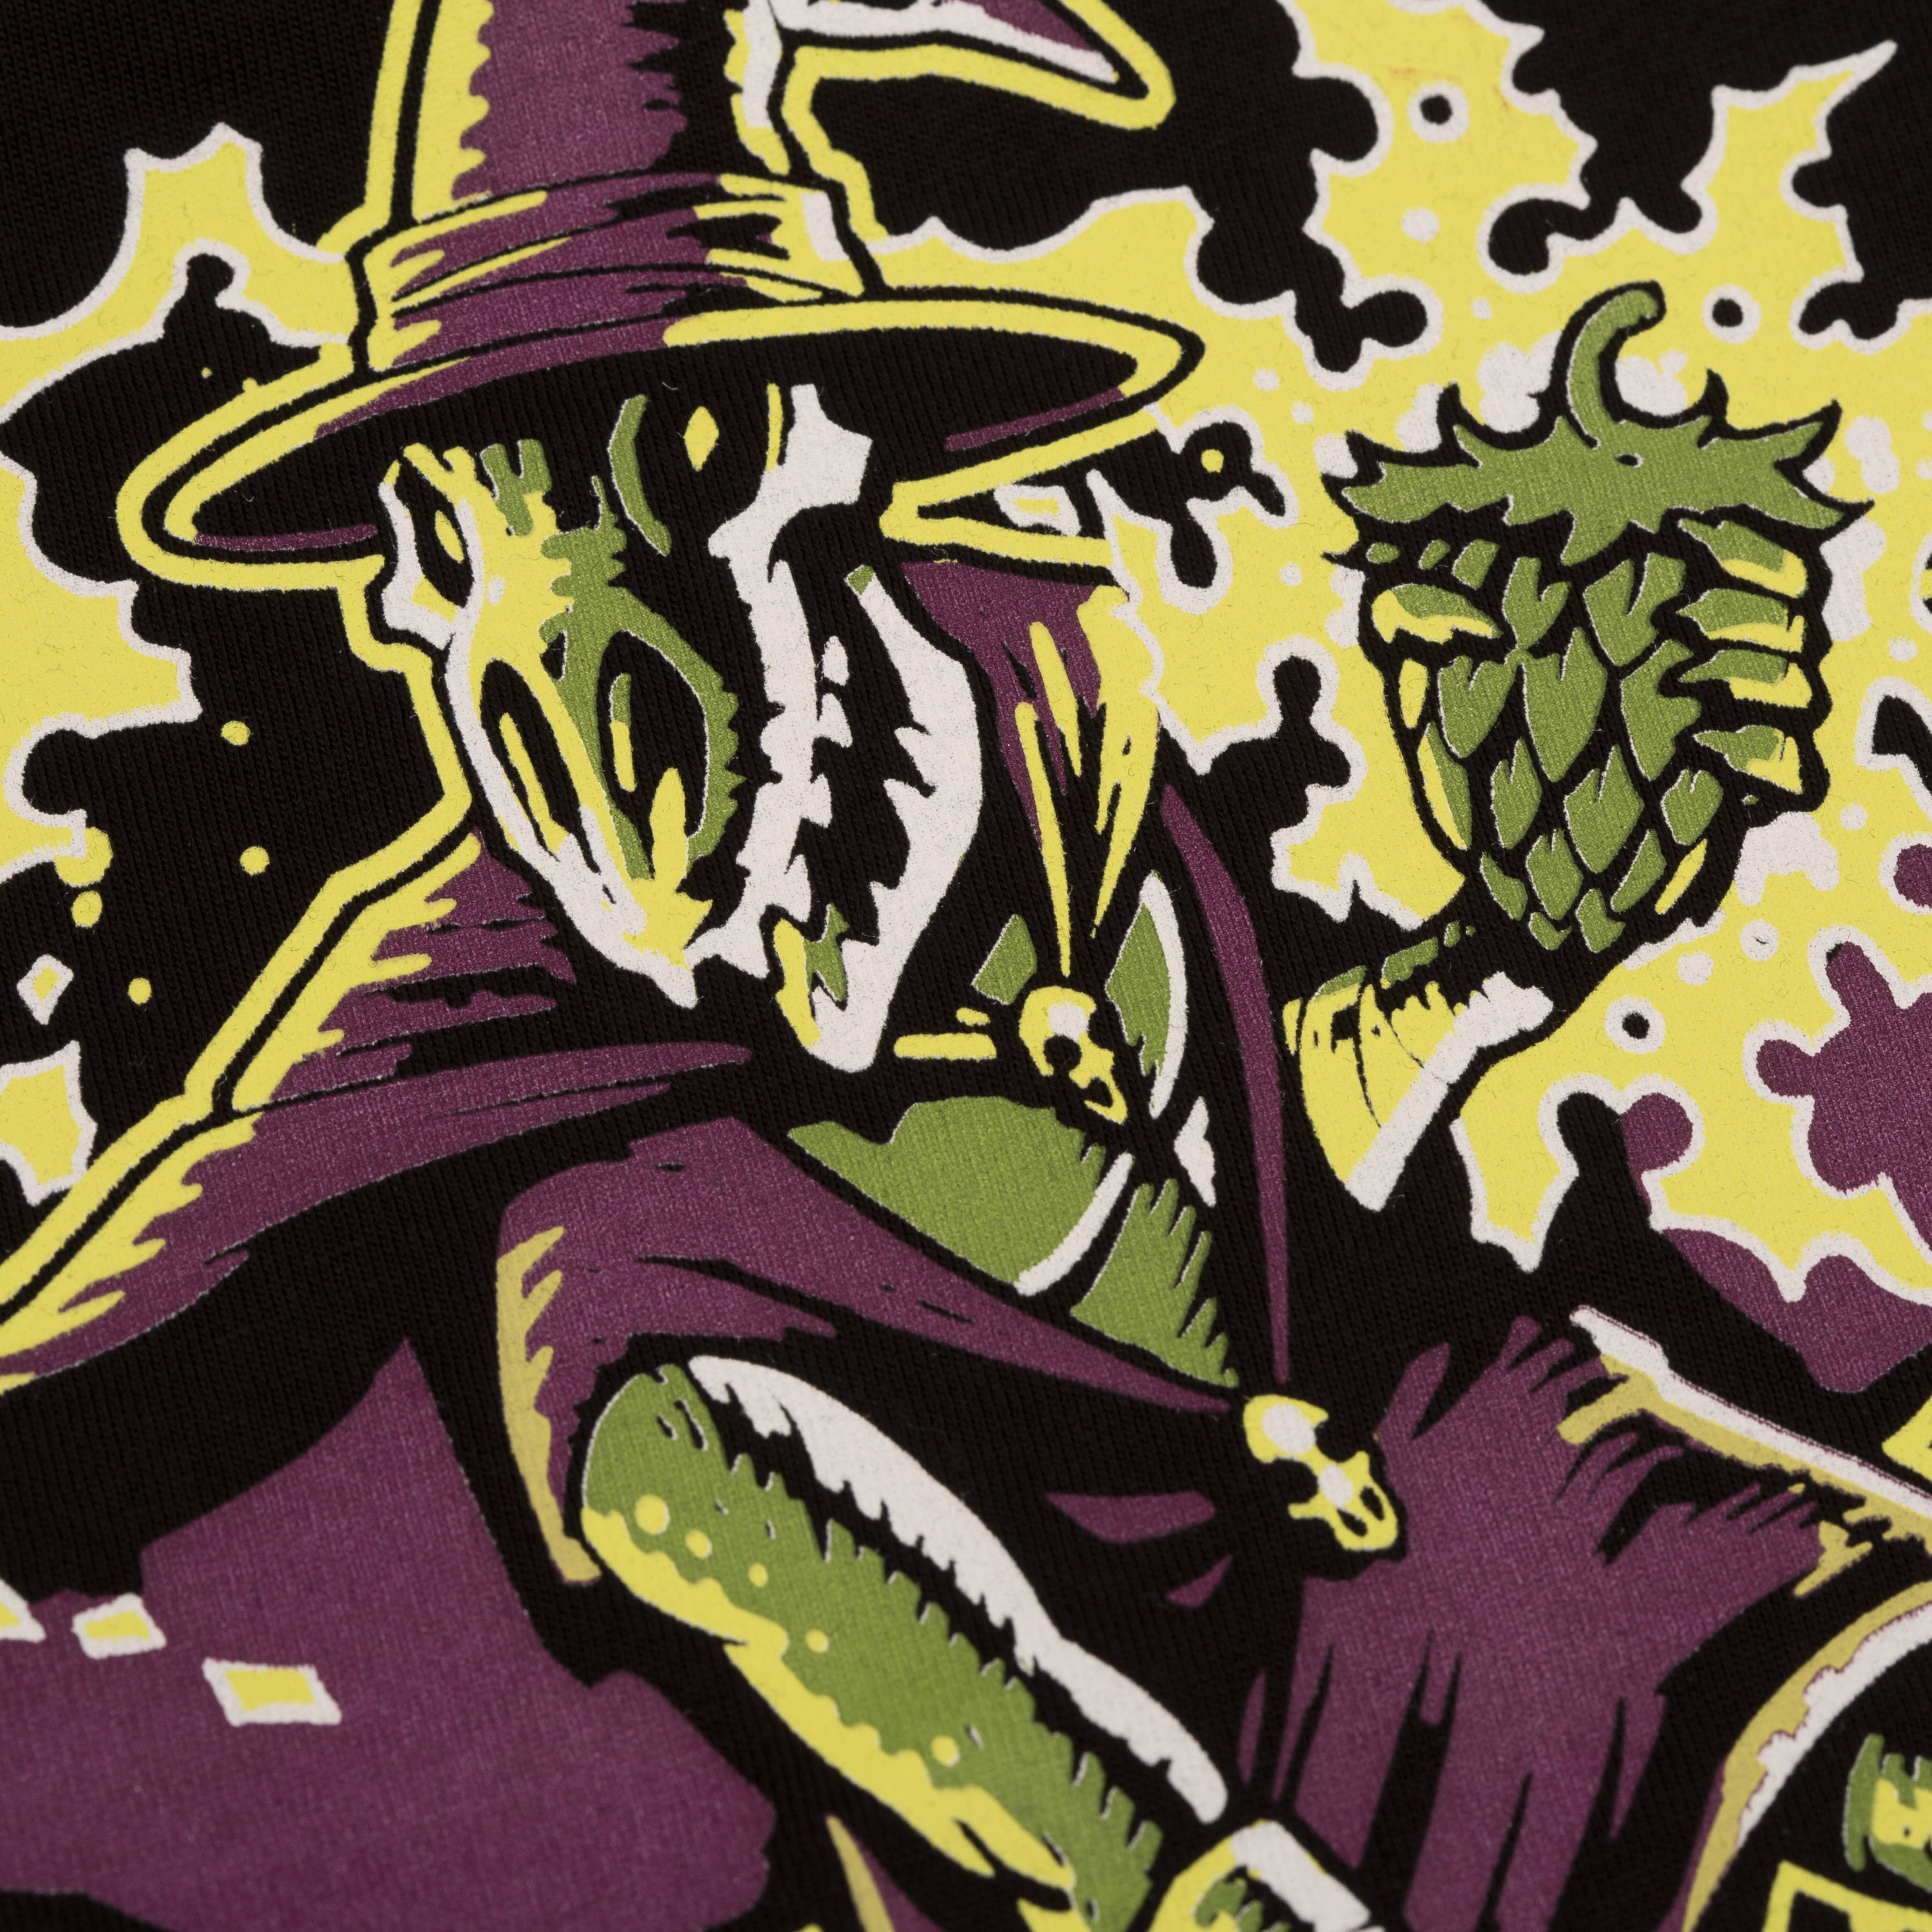 Boneface Brewing the wizard custom screen printed tees and embroidery nz